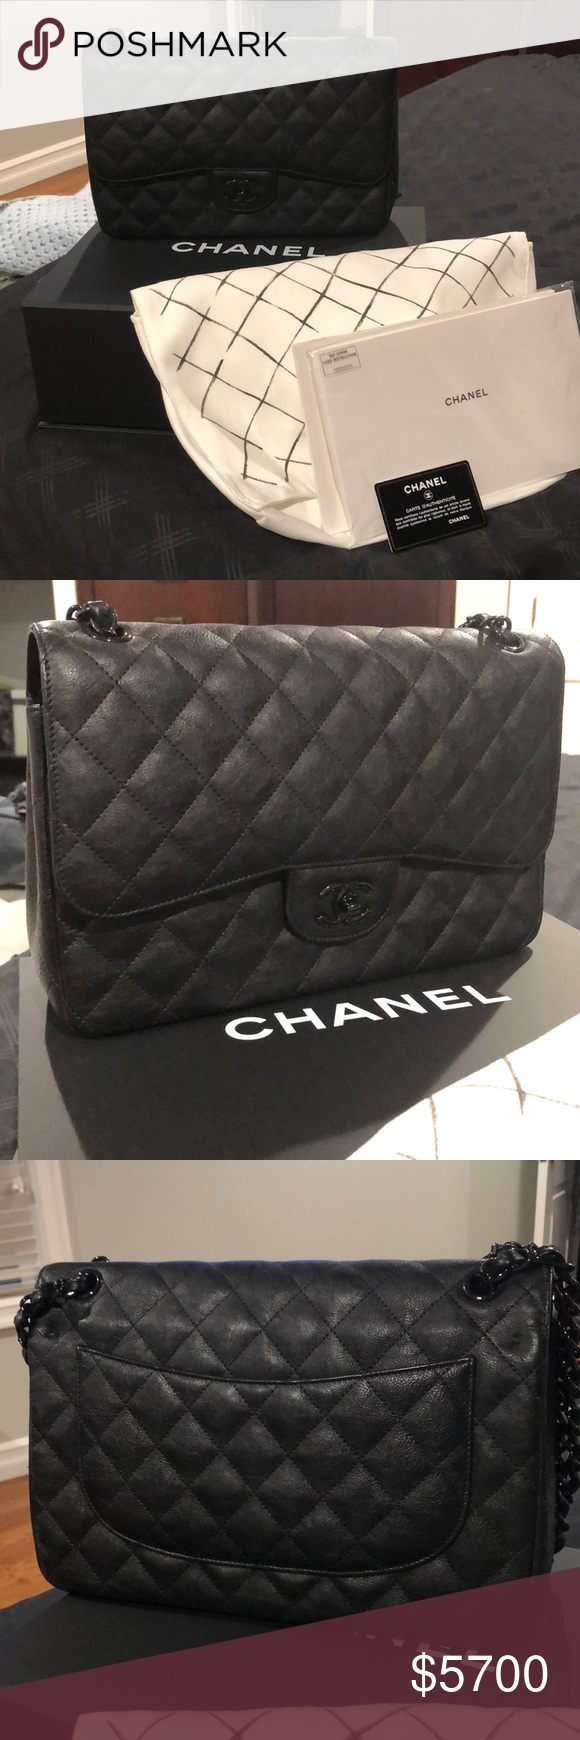 b2da19eac2ed Chanel Jumbo So Black Double Flap Perfect Condition! Comes with box,  authenticity card, care cards and dust bag. This bag is the quilted crumpled  calfskin ...